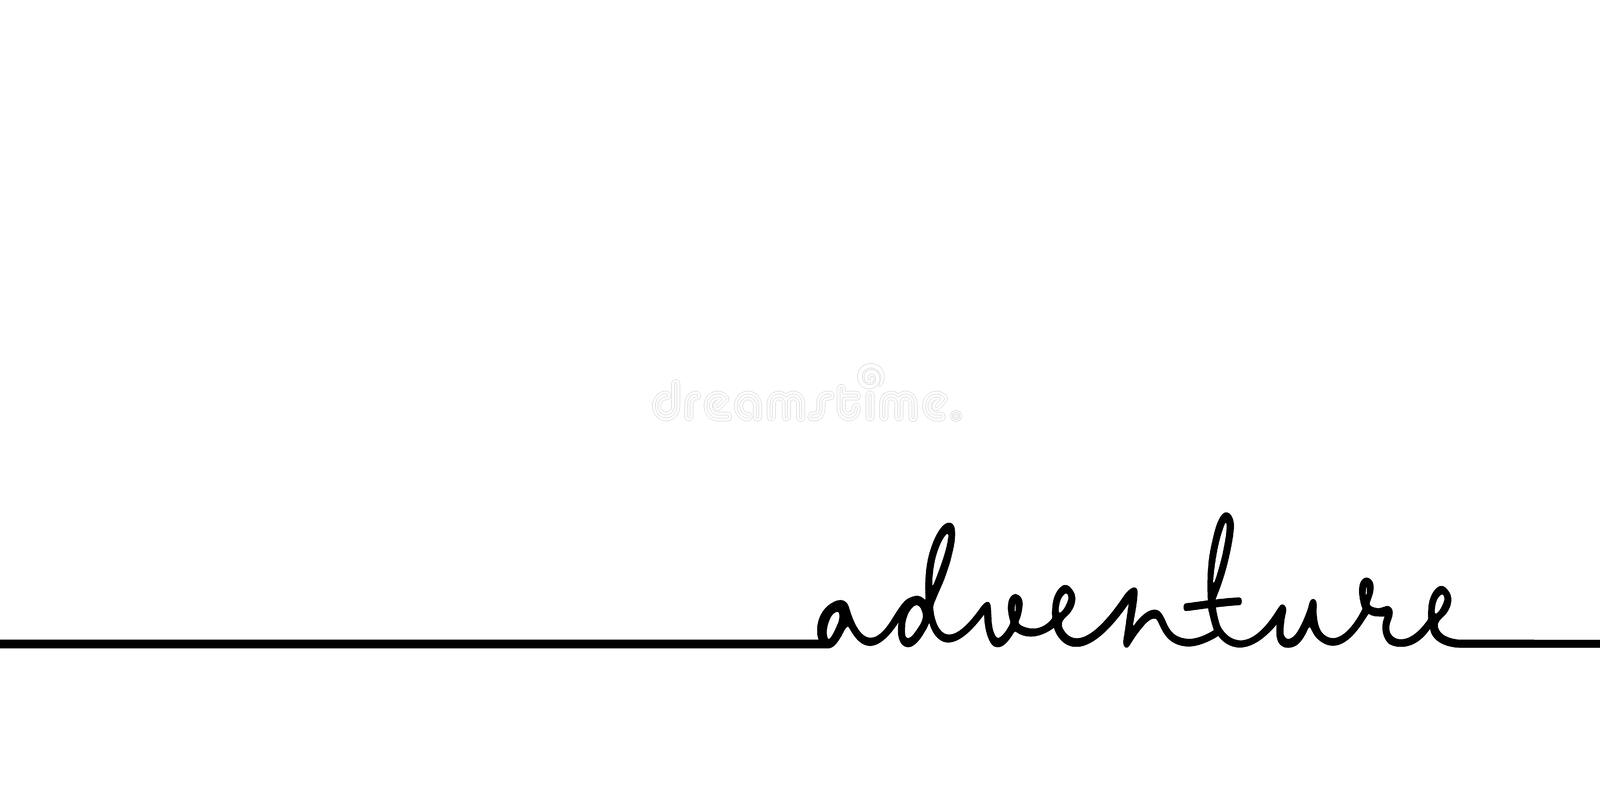 Adventure - continuous one black line with word. Minimalistic drawing of phrase illustration royalty free illustration